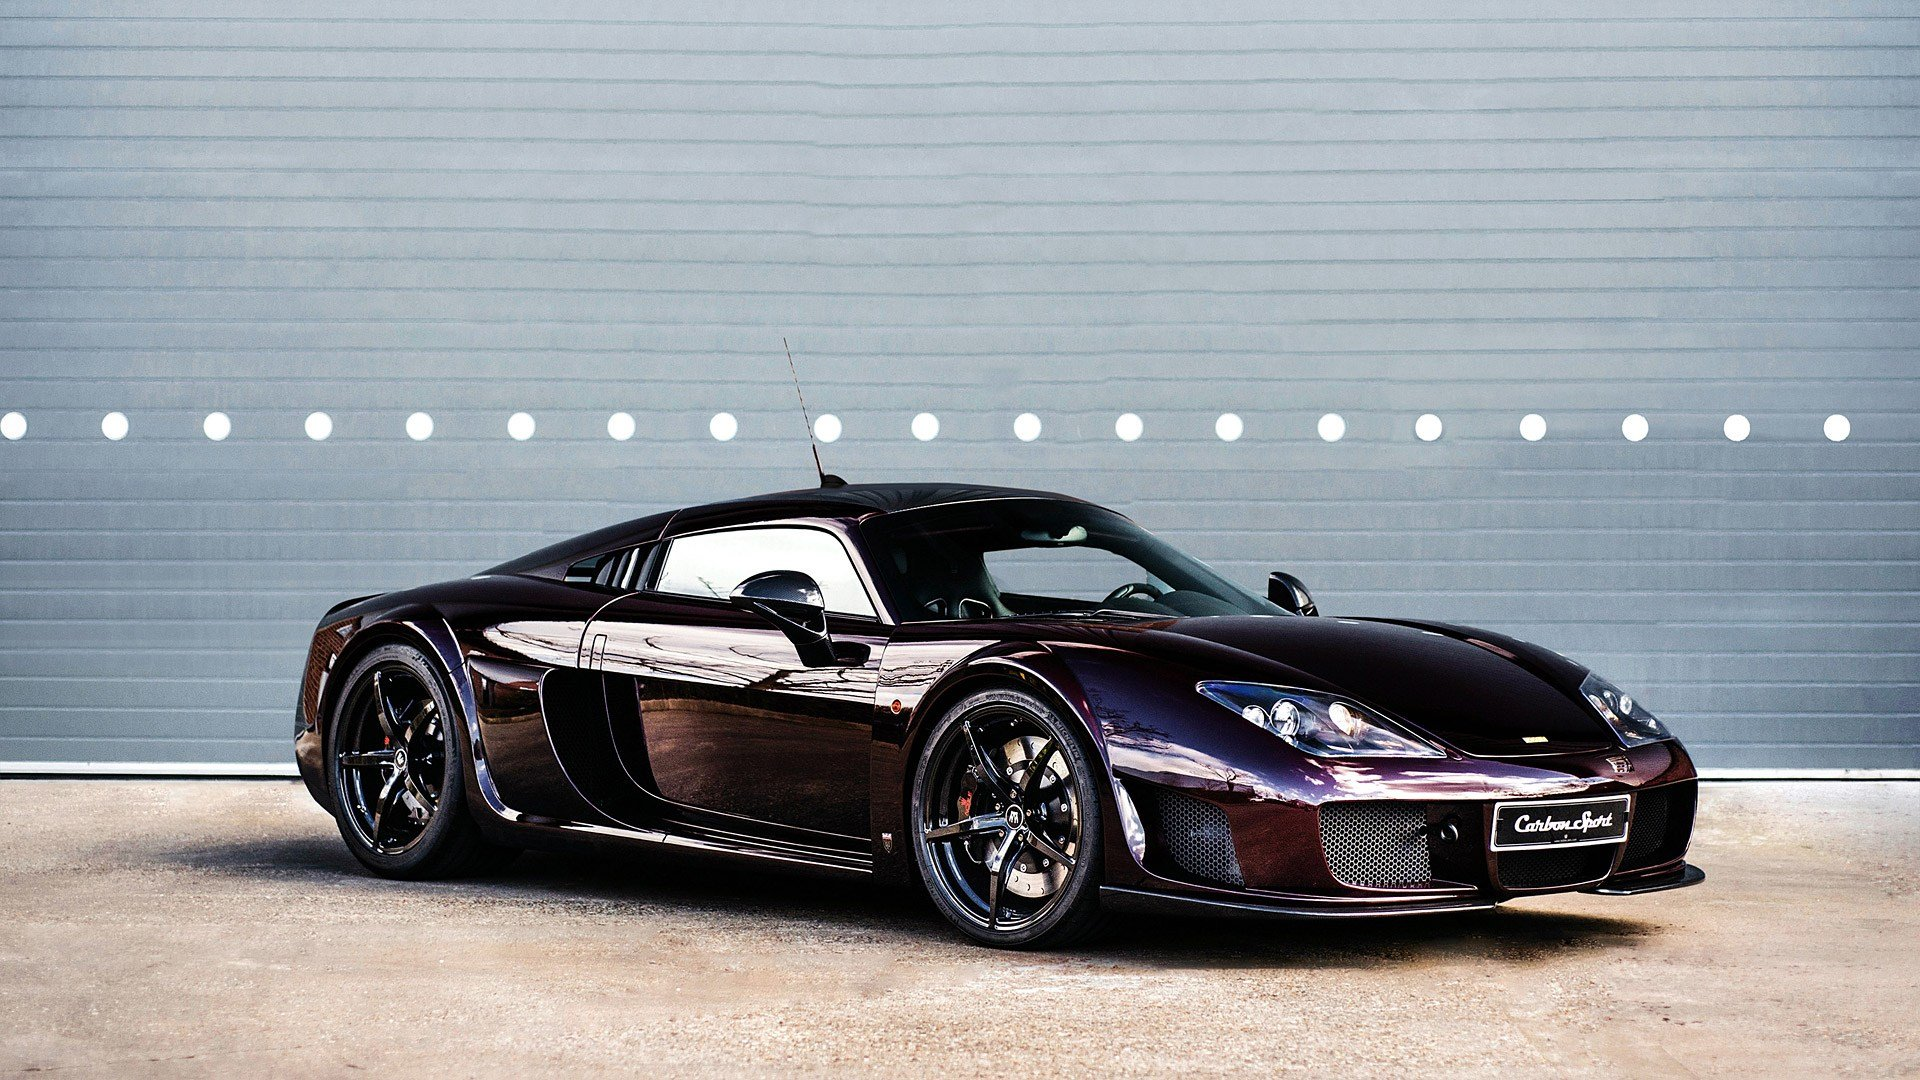 Latest 2017 Noble M600 Carbon Sport Wallpapers Hd Images Free Download